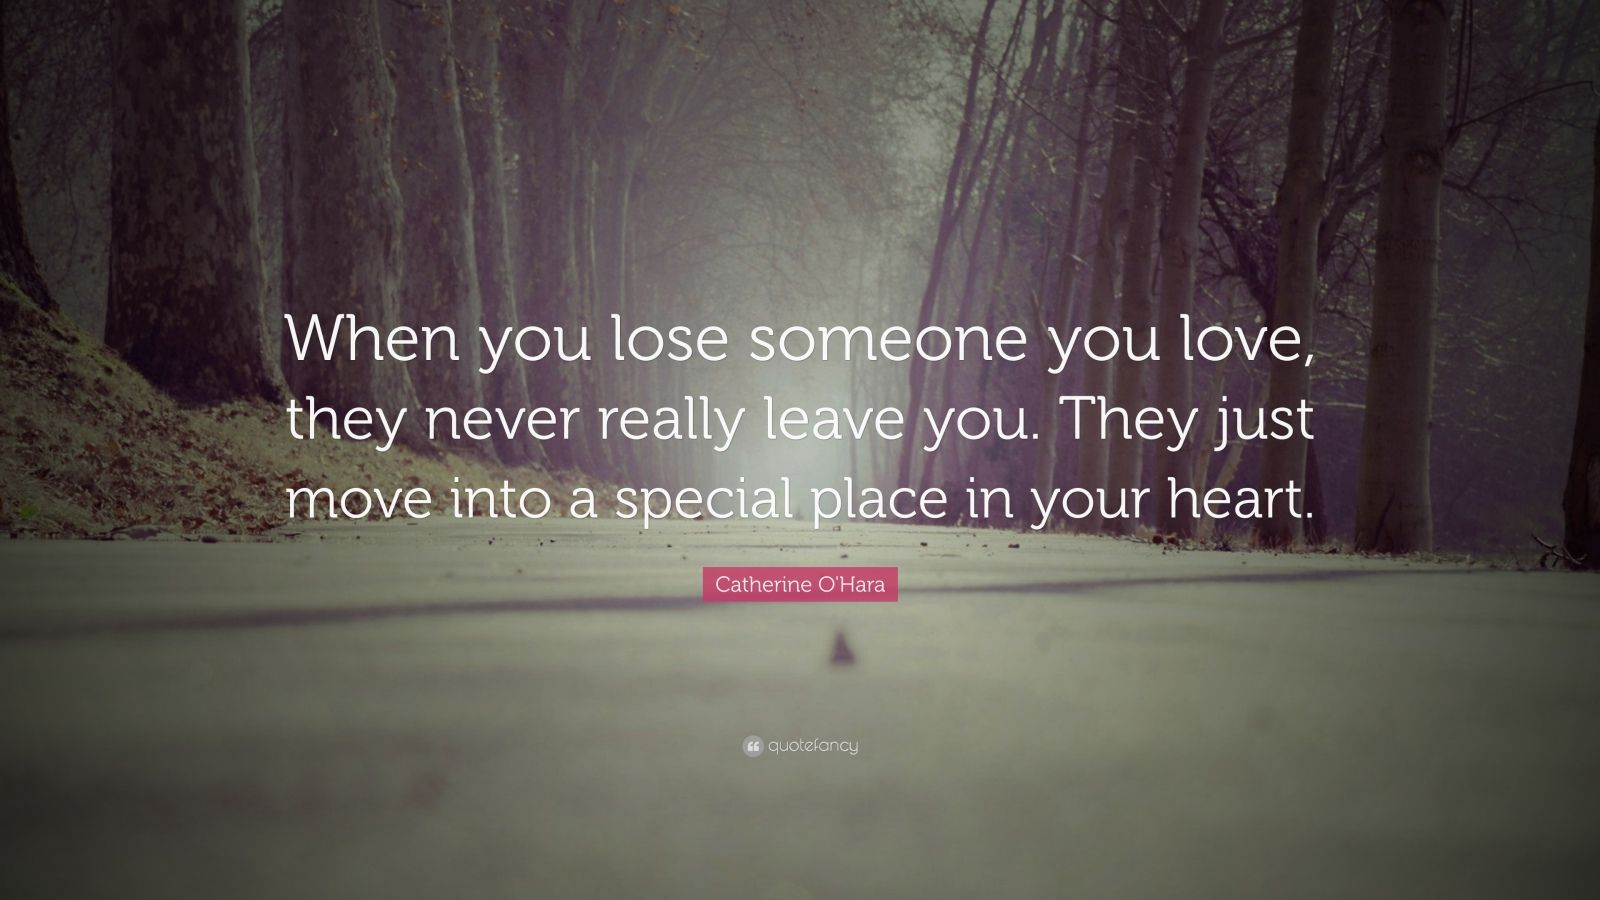 Catherine OHara Quote: When you lose someone you love